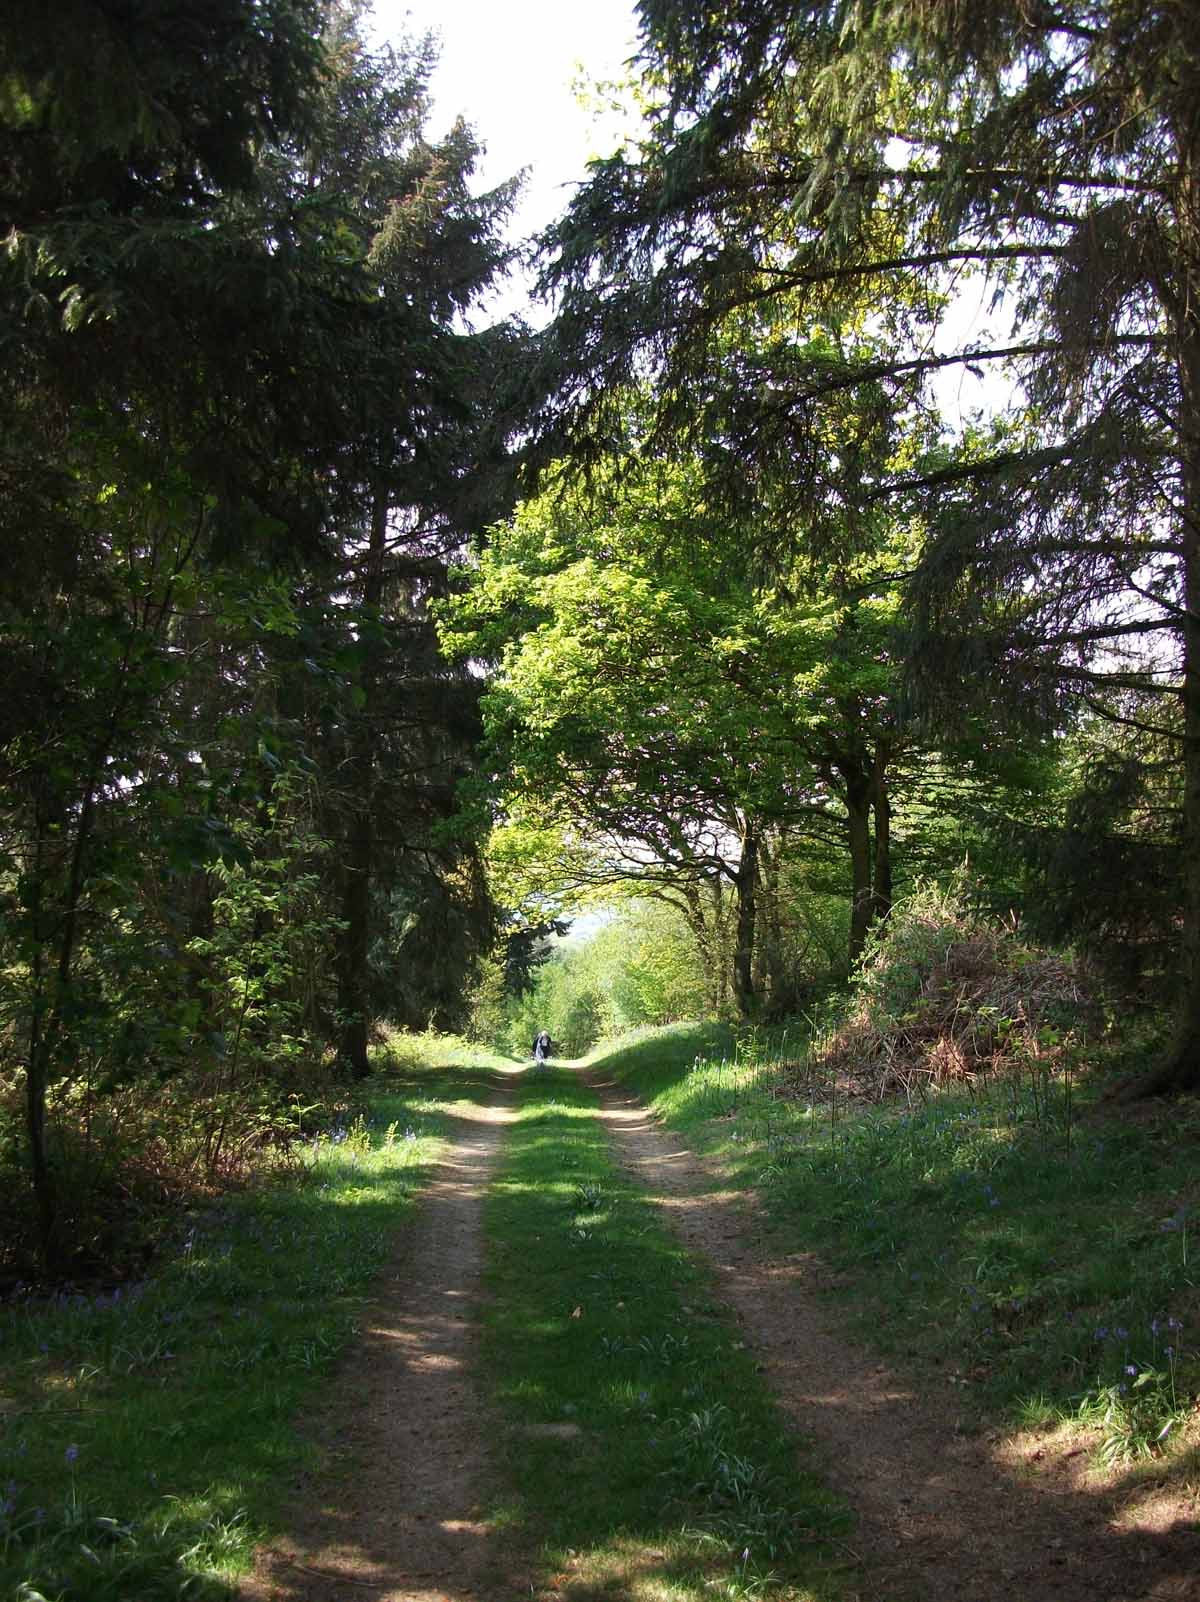 A track leading up to the Burrow